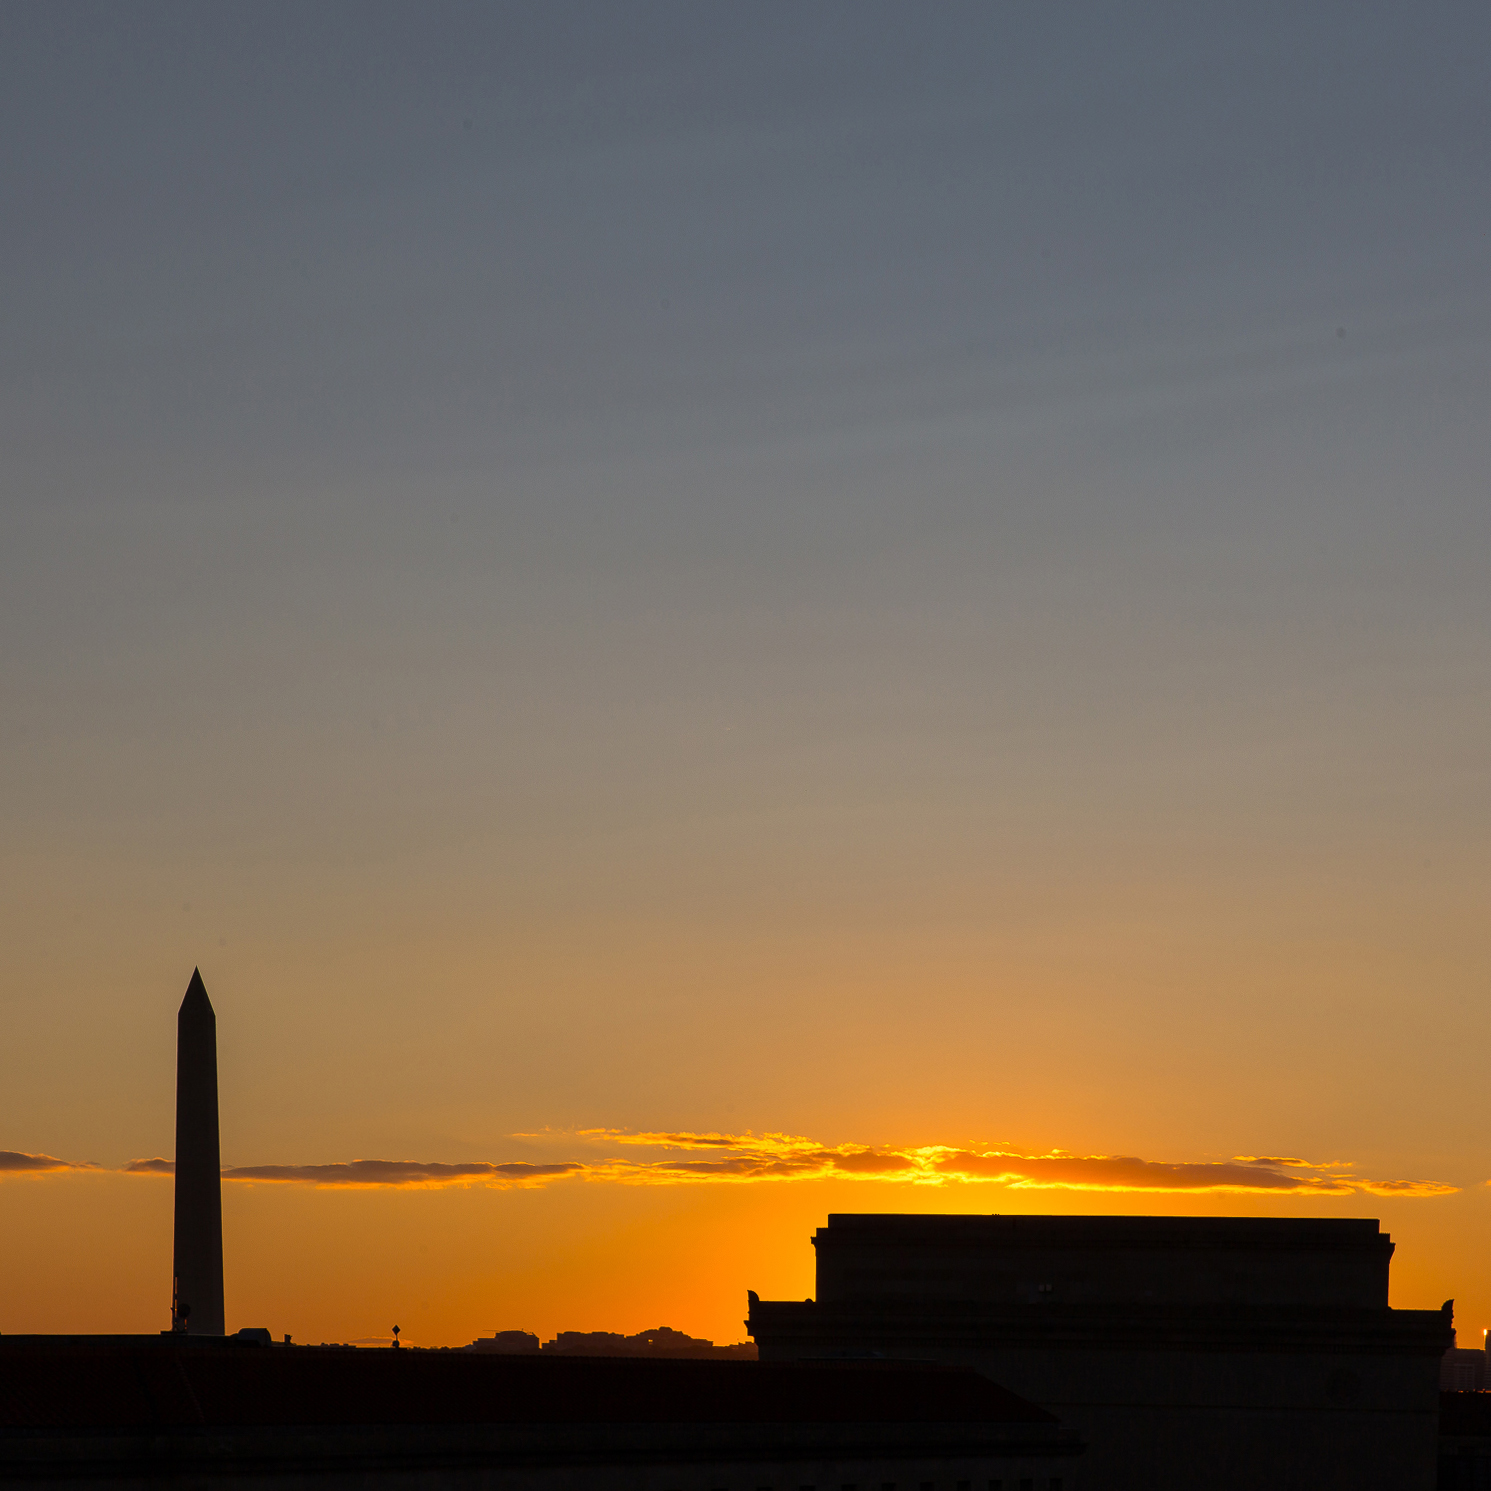 Washington Monument and National Archives at sunset